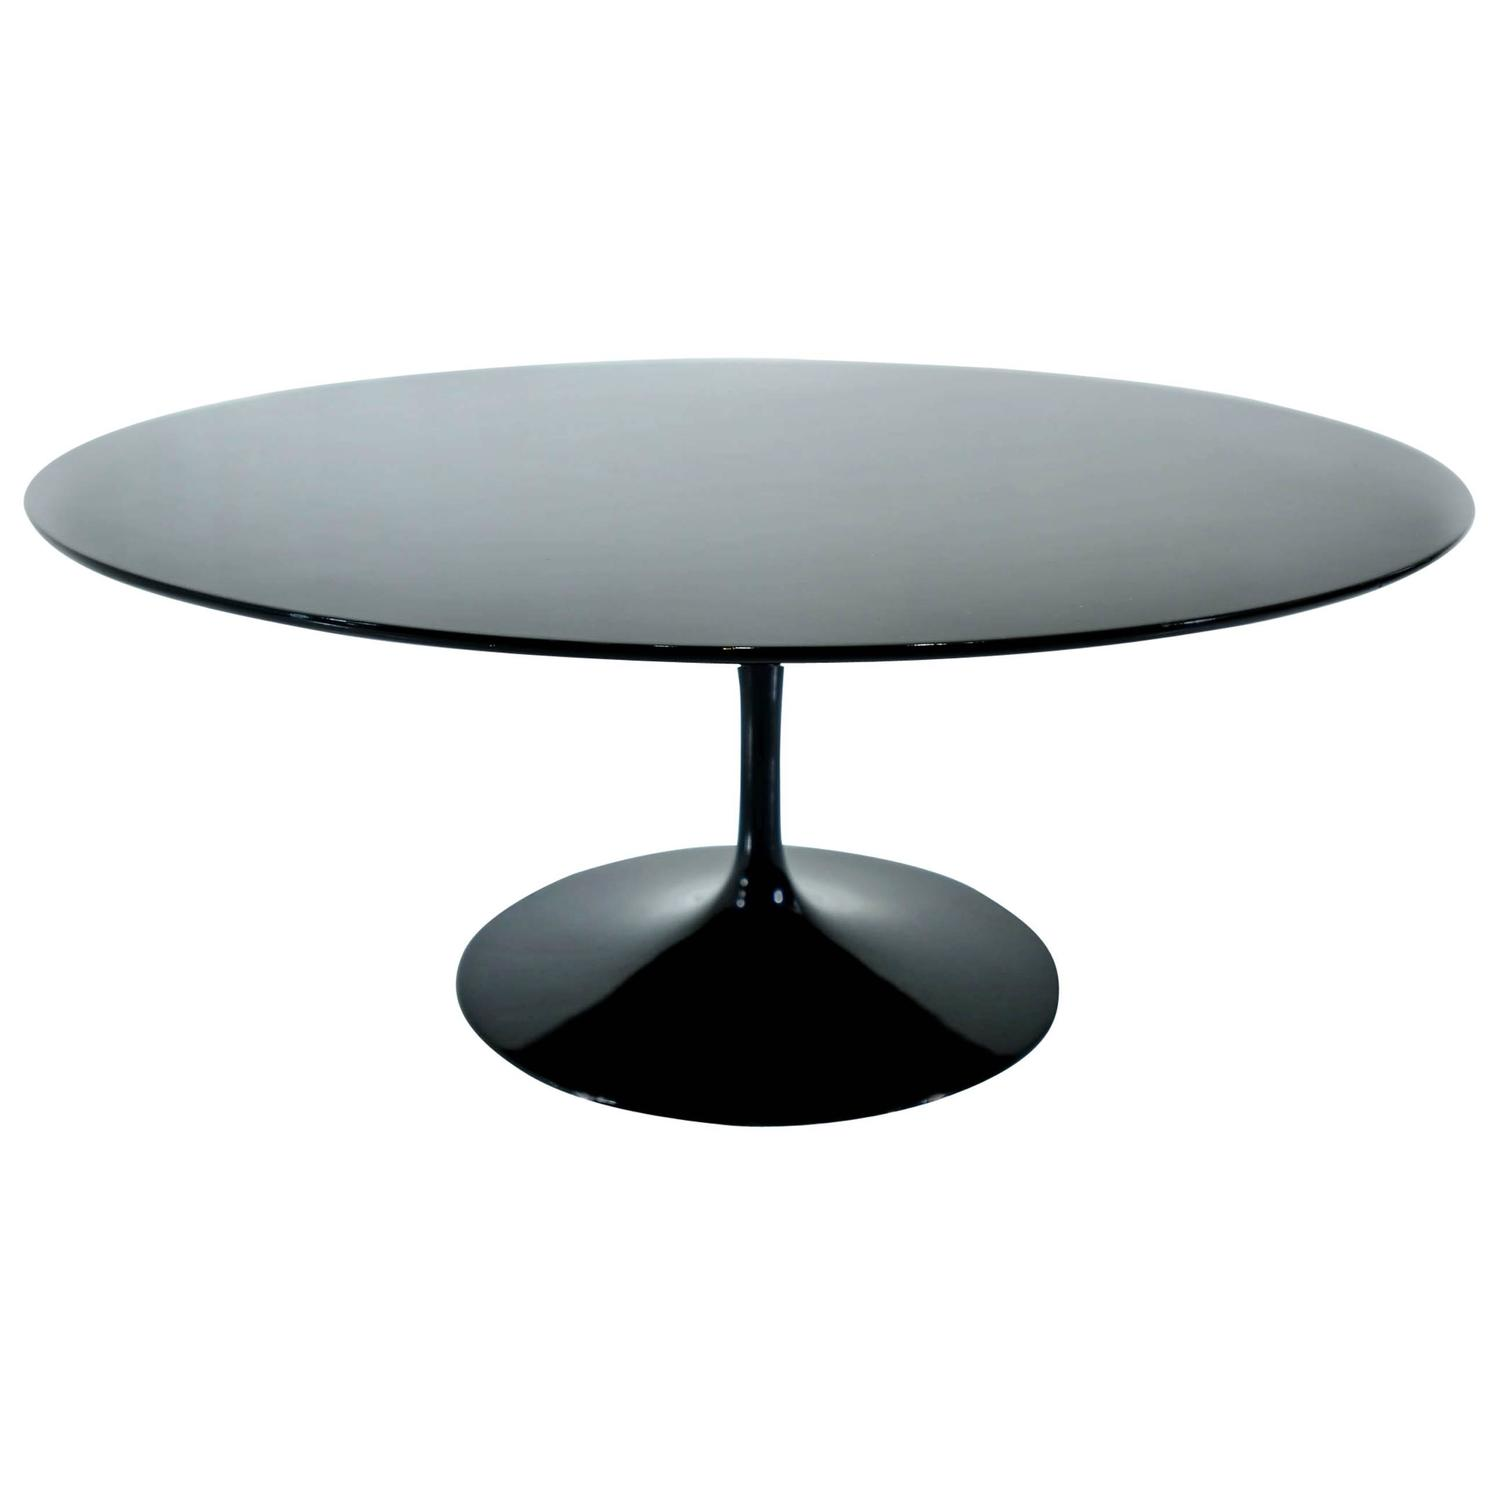 Eero saarinen tulip round coffee table at 1stdibs Round coffee tables